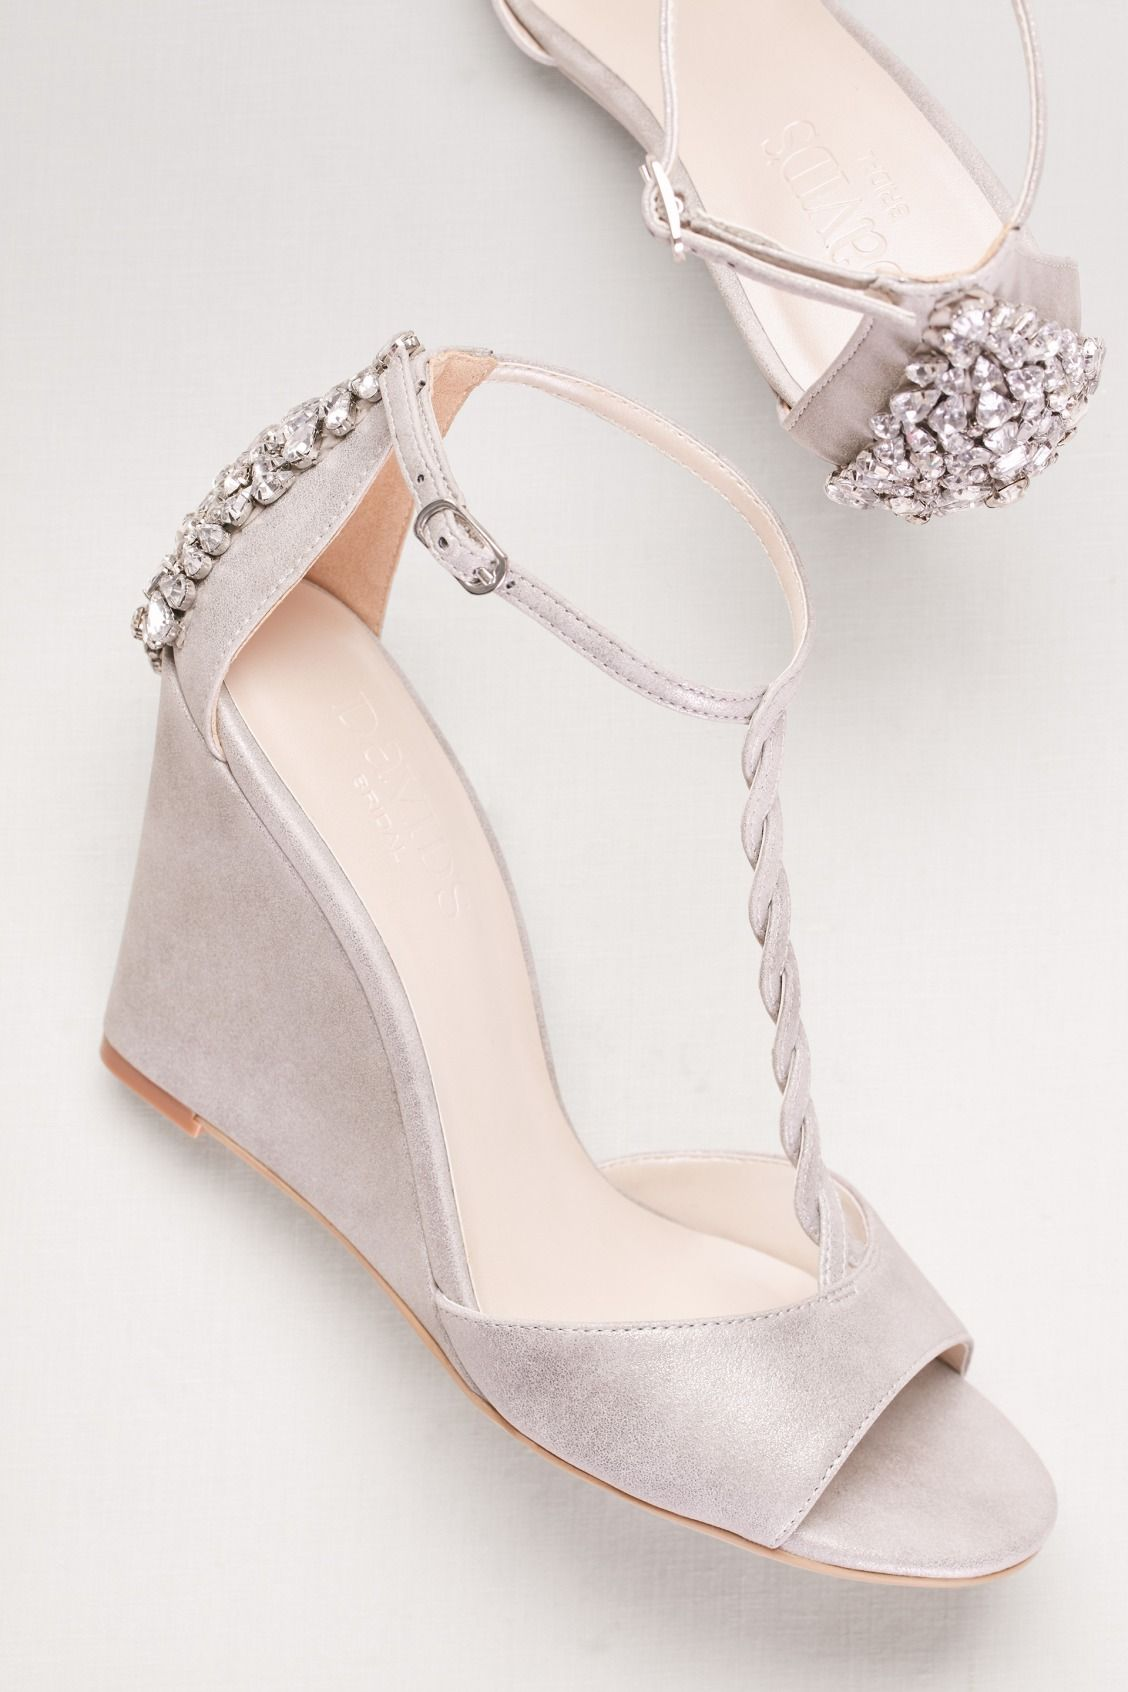 c7db10406 Braided T-Strap Bridal Wedges with Crystals available at David s Bridal